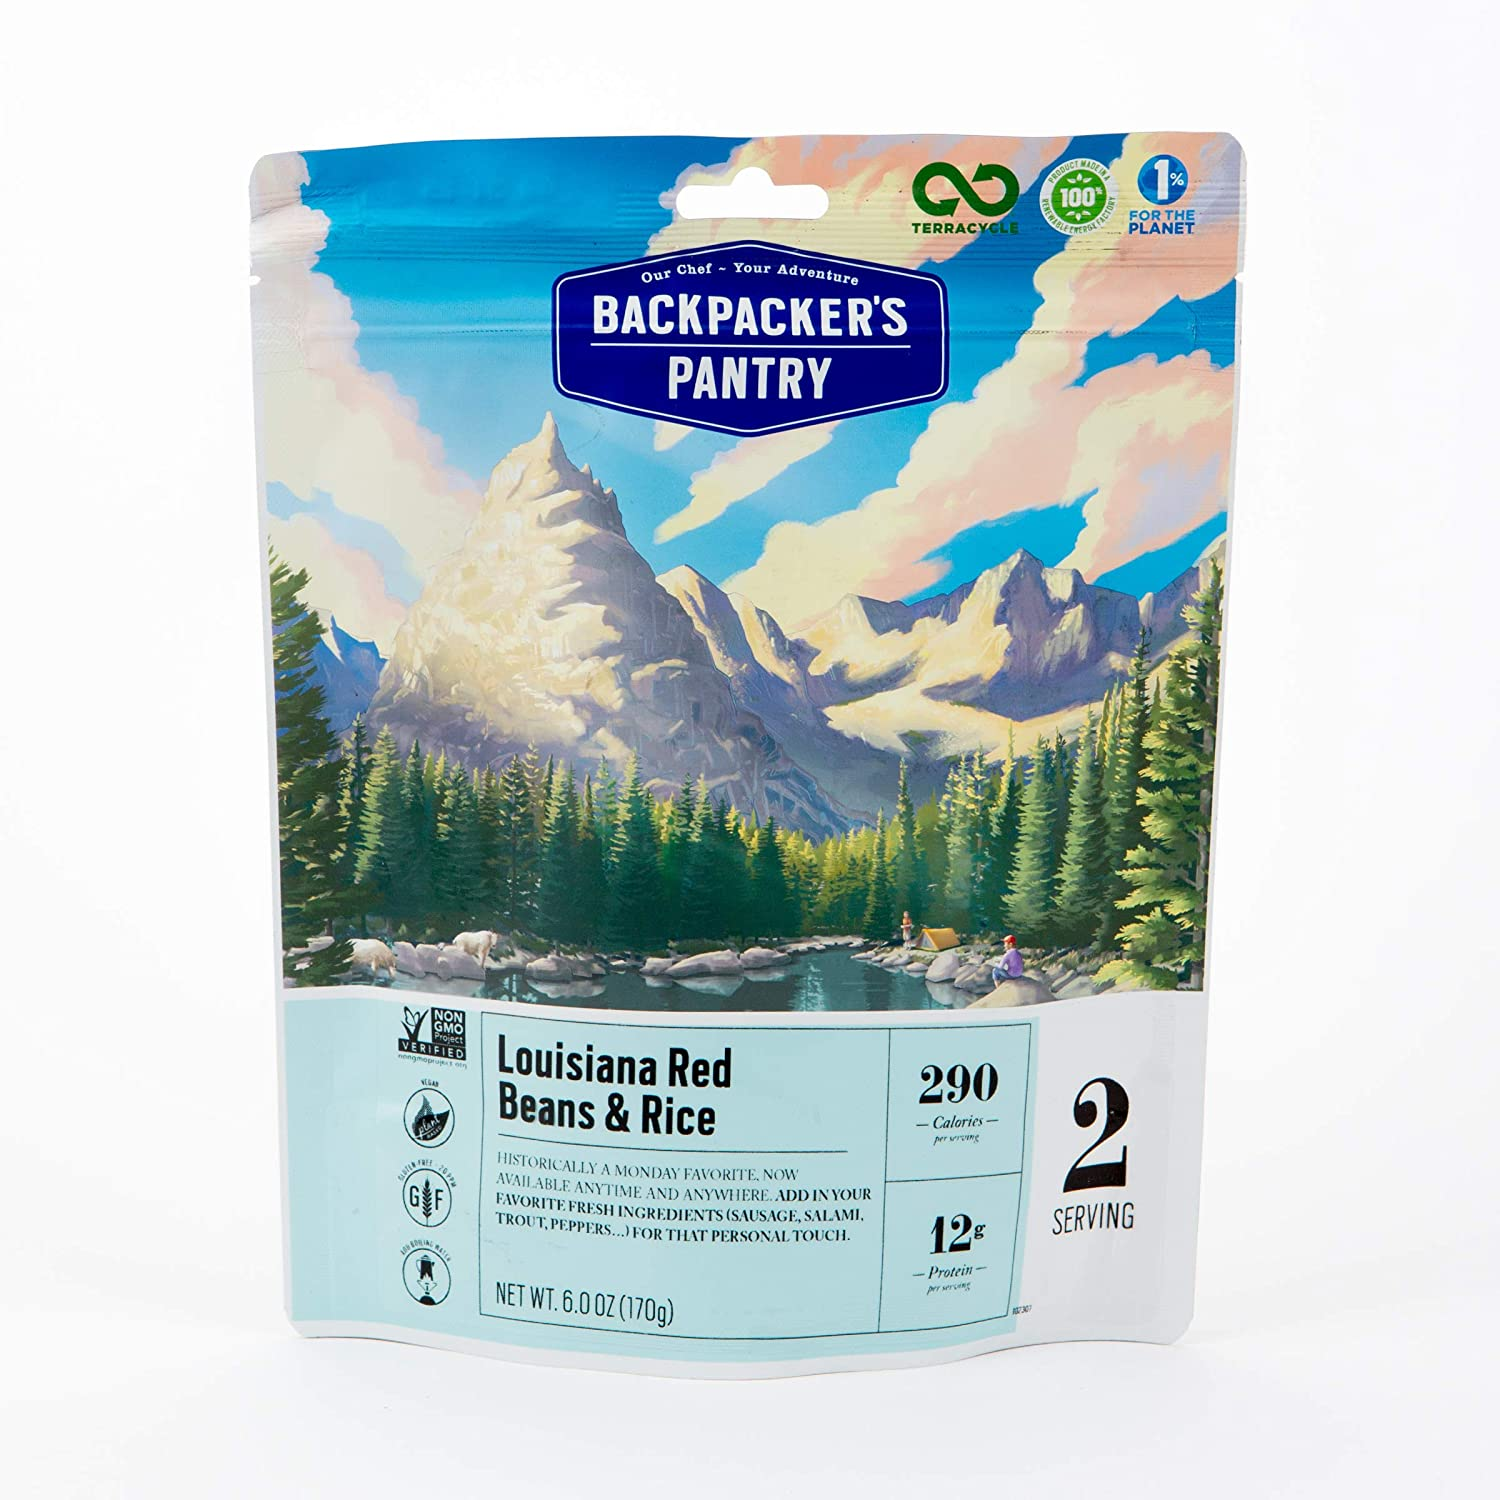 Backpacker's Pantry Louisiana Red Beans & Rice, 2 Servings Per Pouch, Freeze Dried Food, 12 Grams of Protein, Vegan, Gluten Free